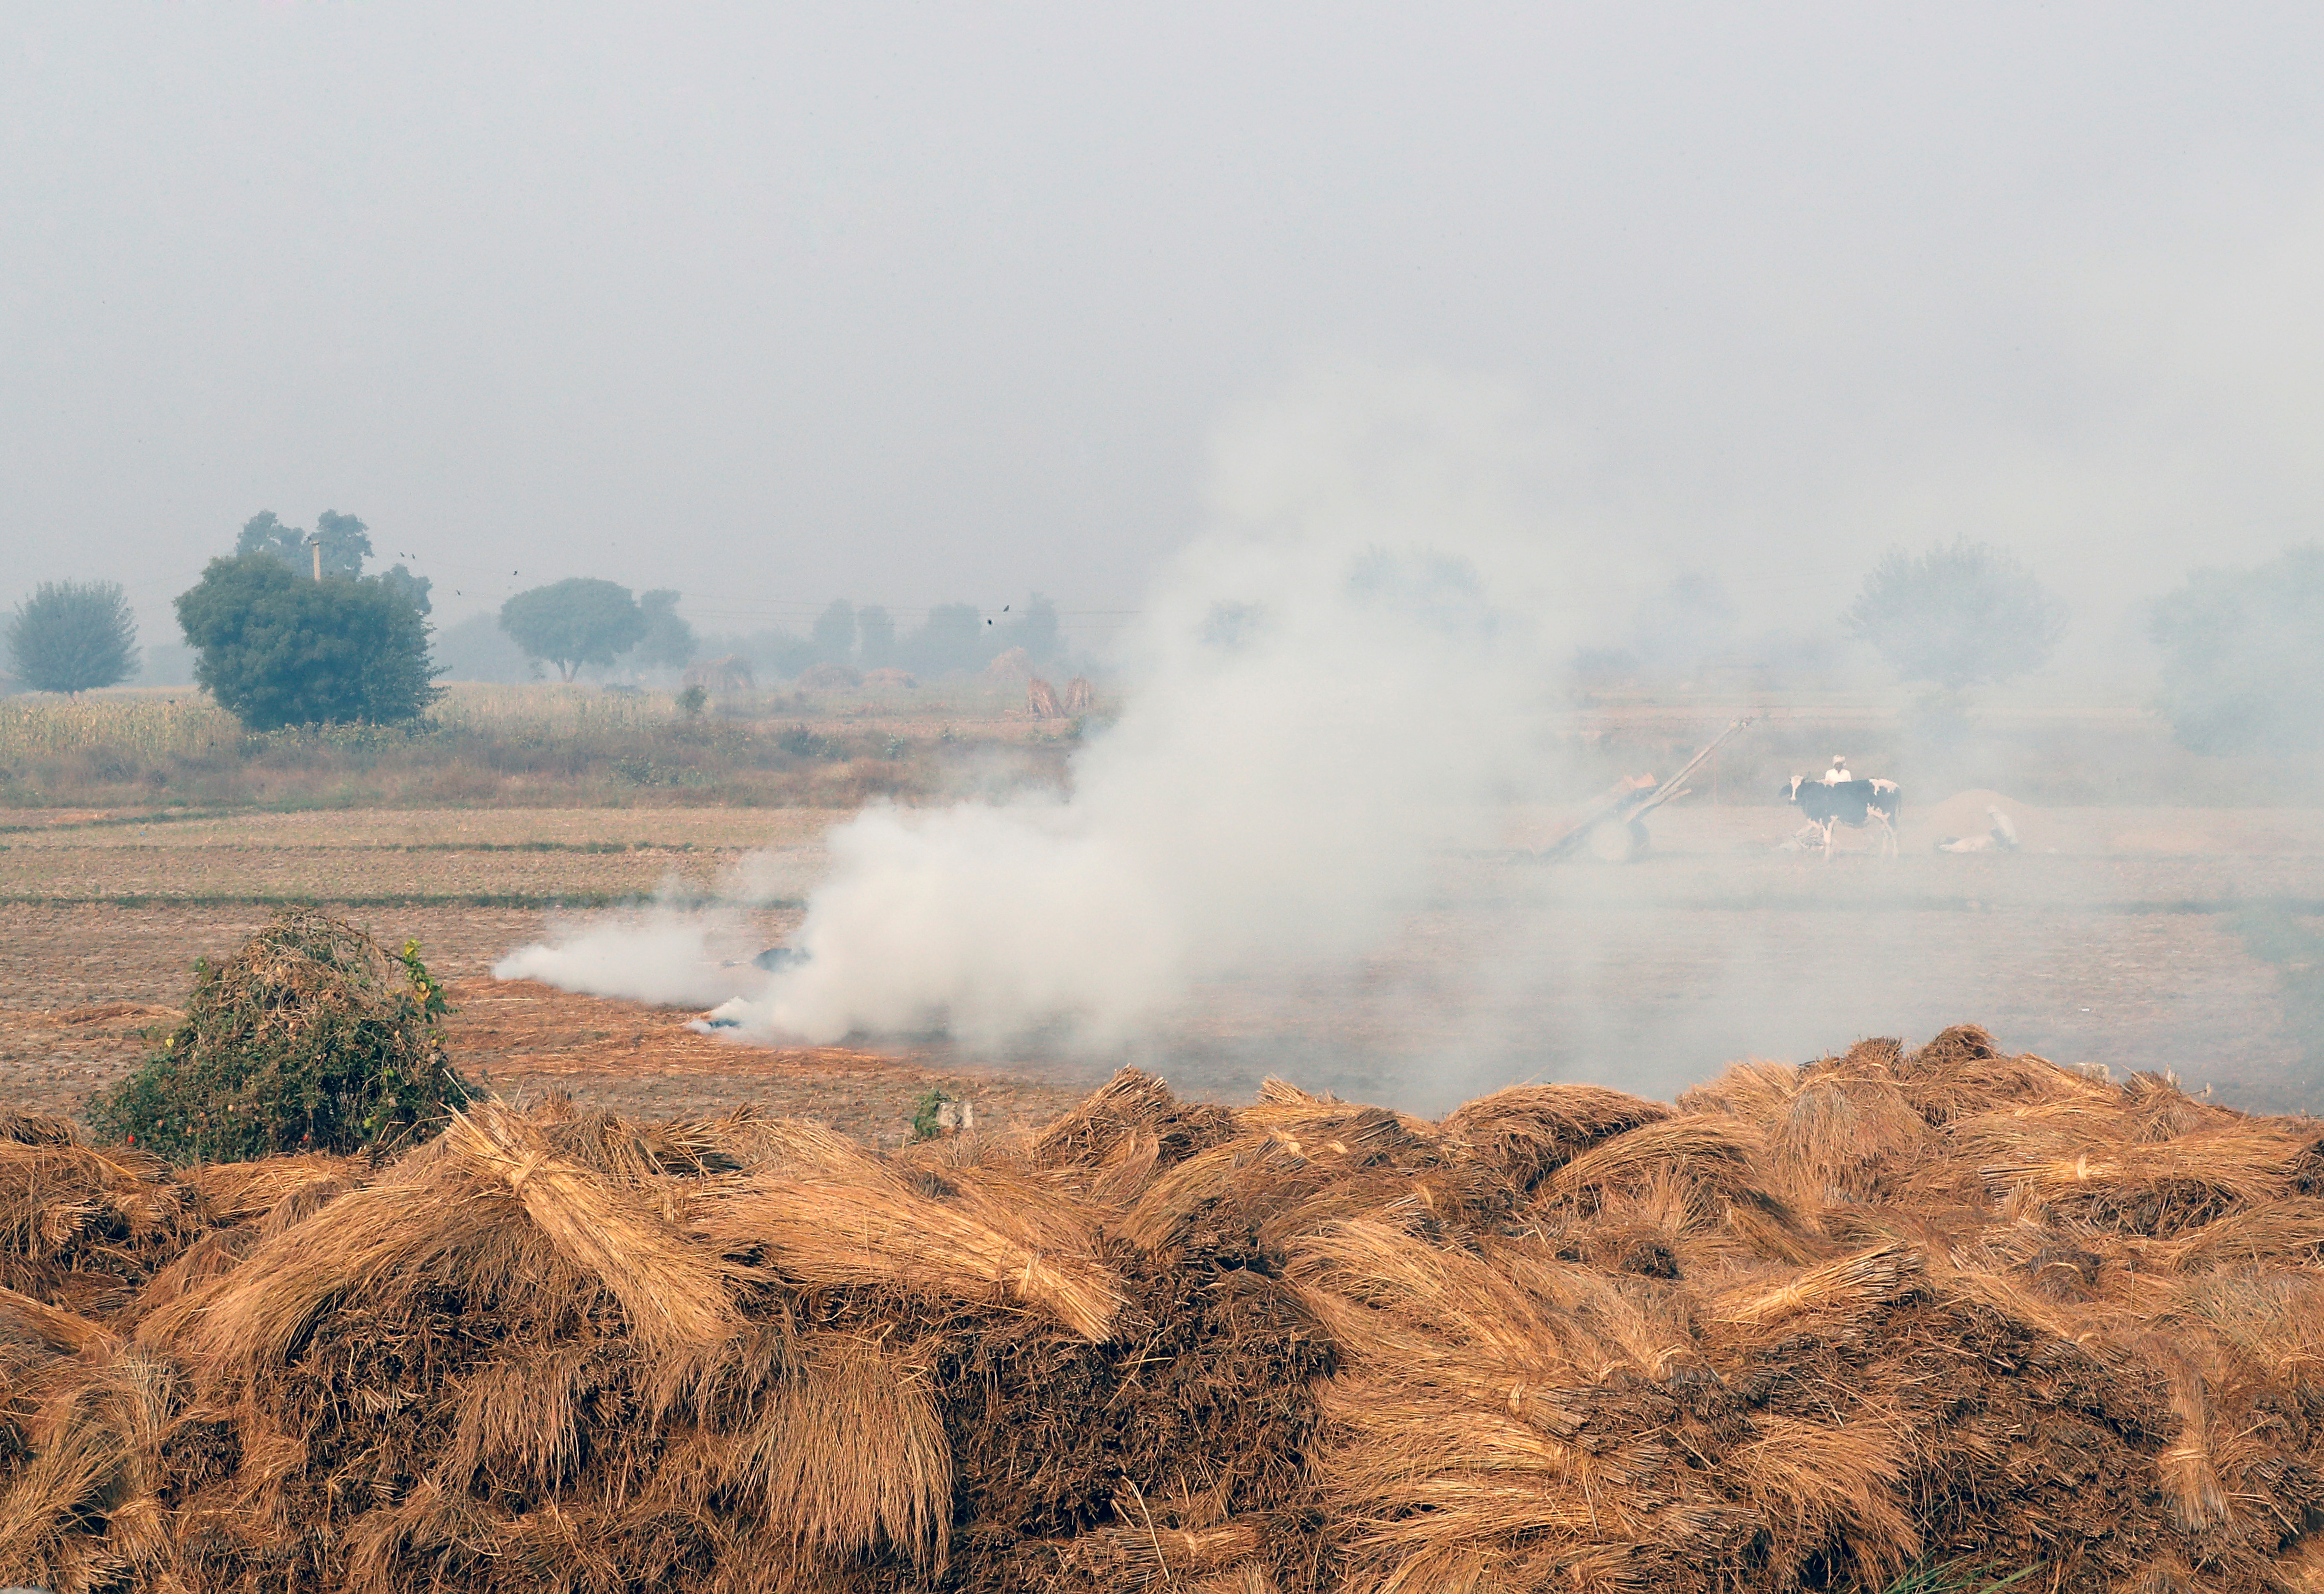 Smoke billows from paddy waste stubble as it burns in a field near Jewar, in the northern state of Uttar Pradesh, India November 6, 2018. REUTERS/Altaf Hussain